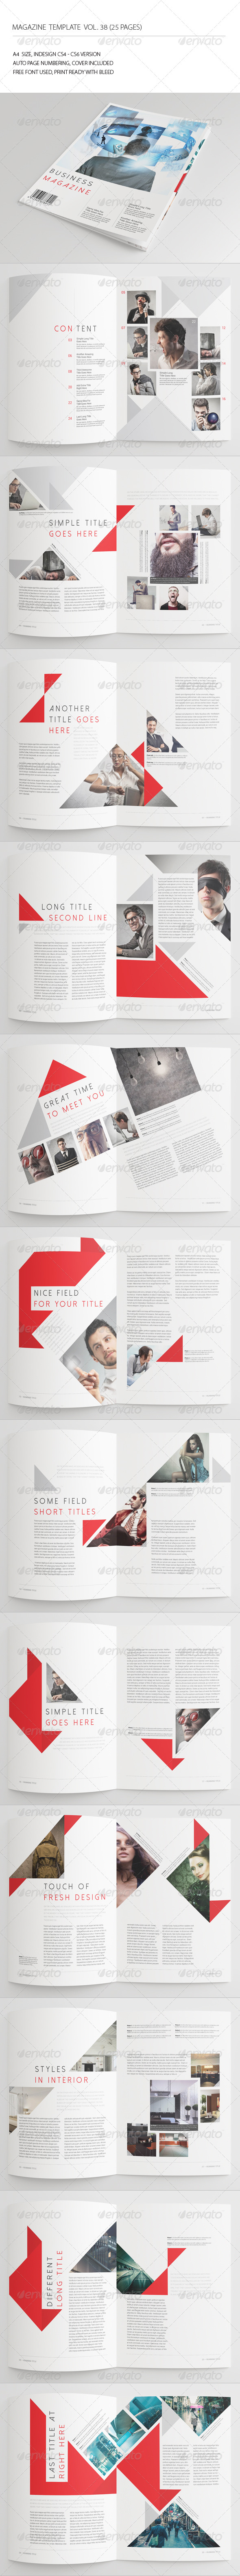 25 Pages Business Magazine Vol38 - Magazines Print Templates